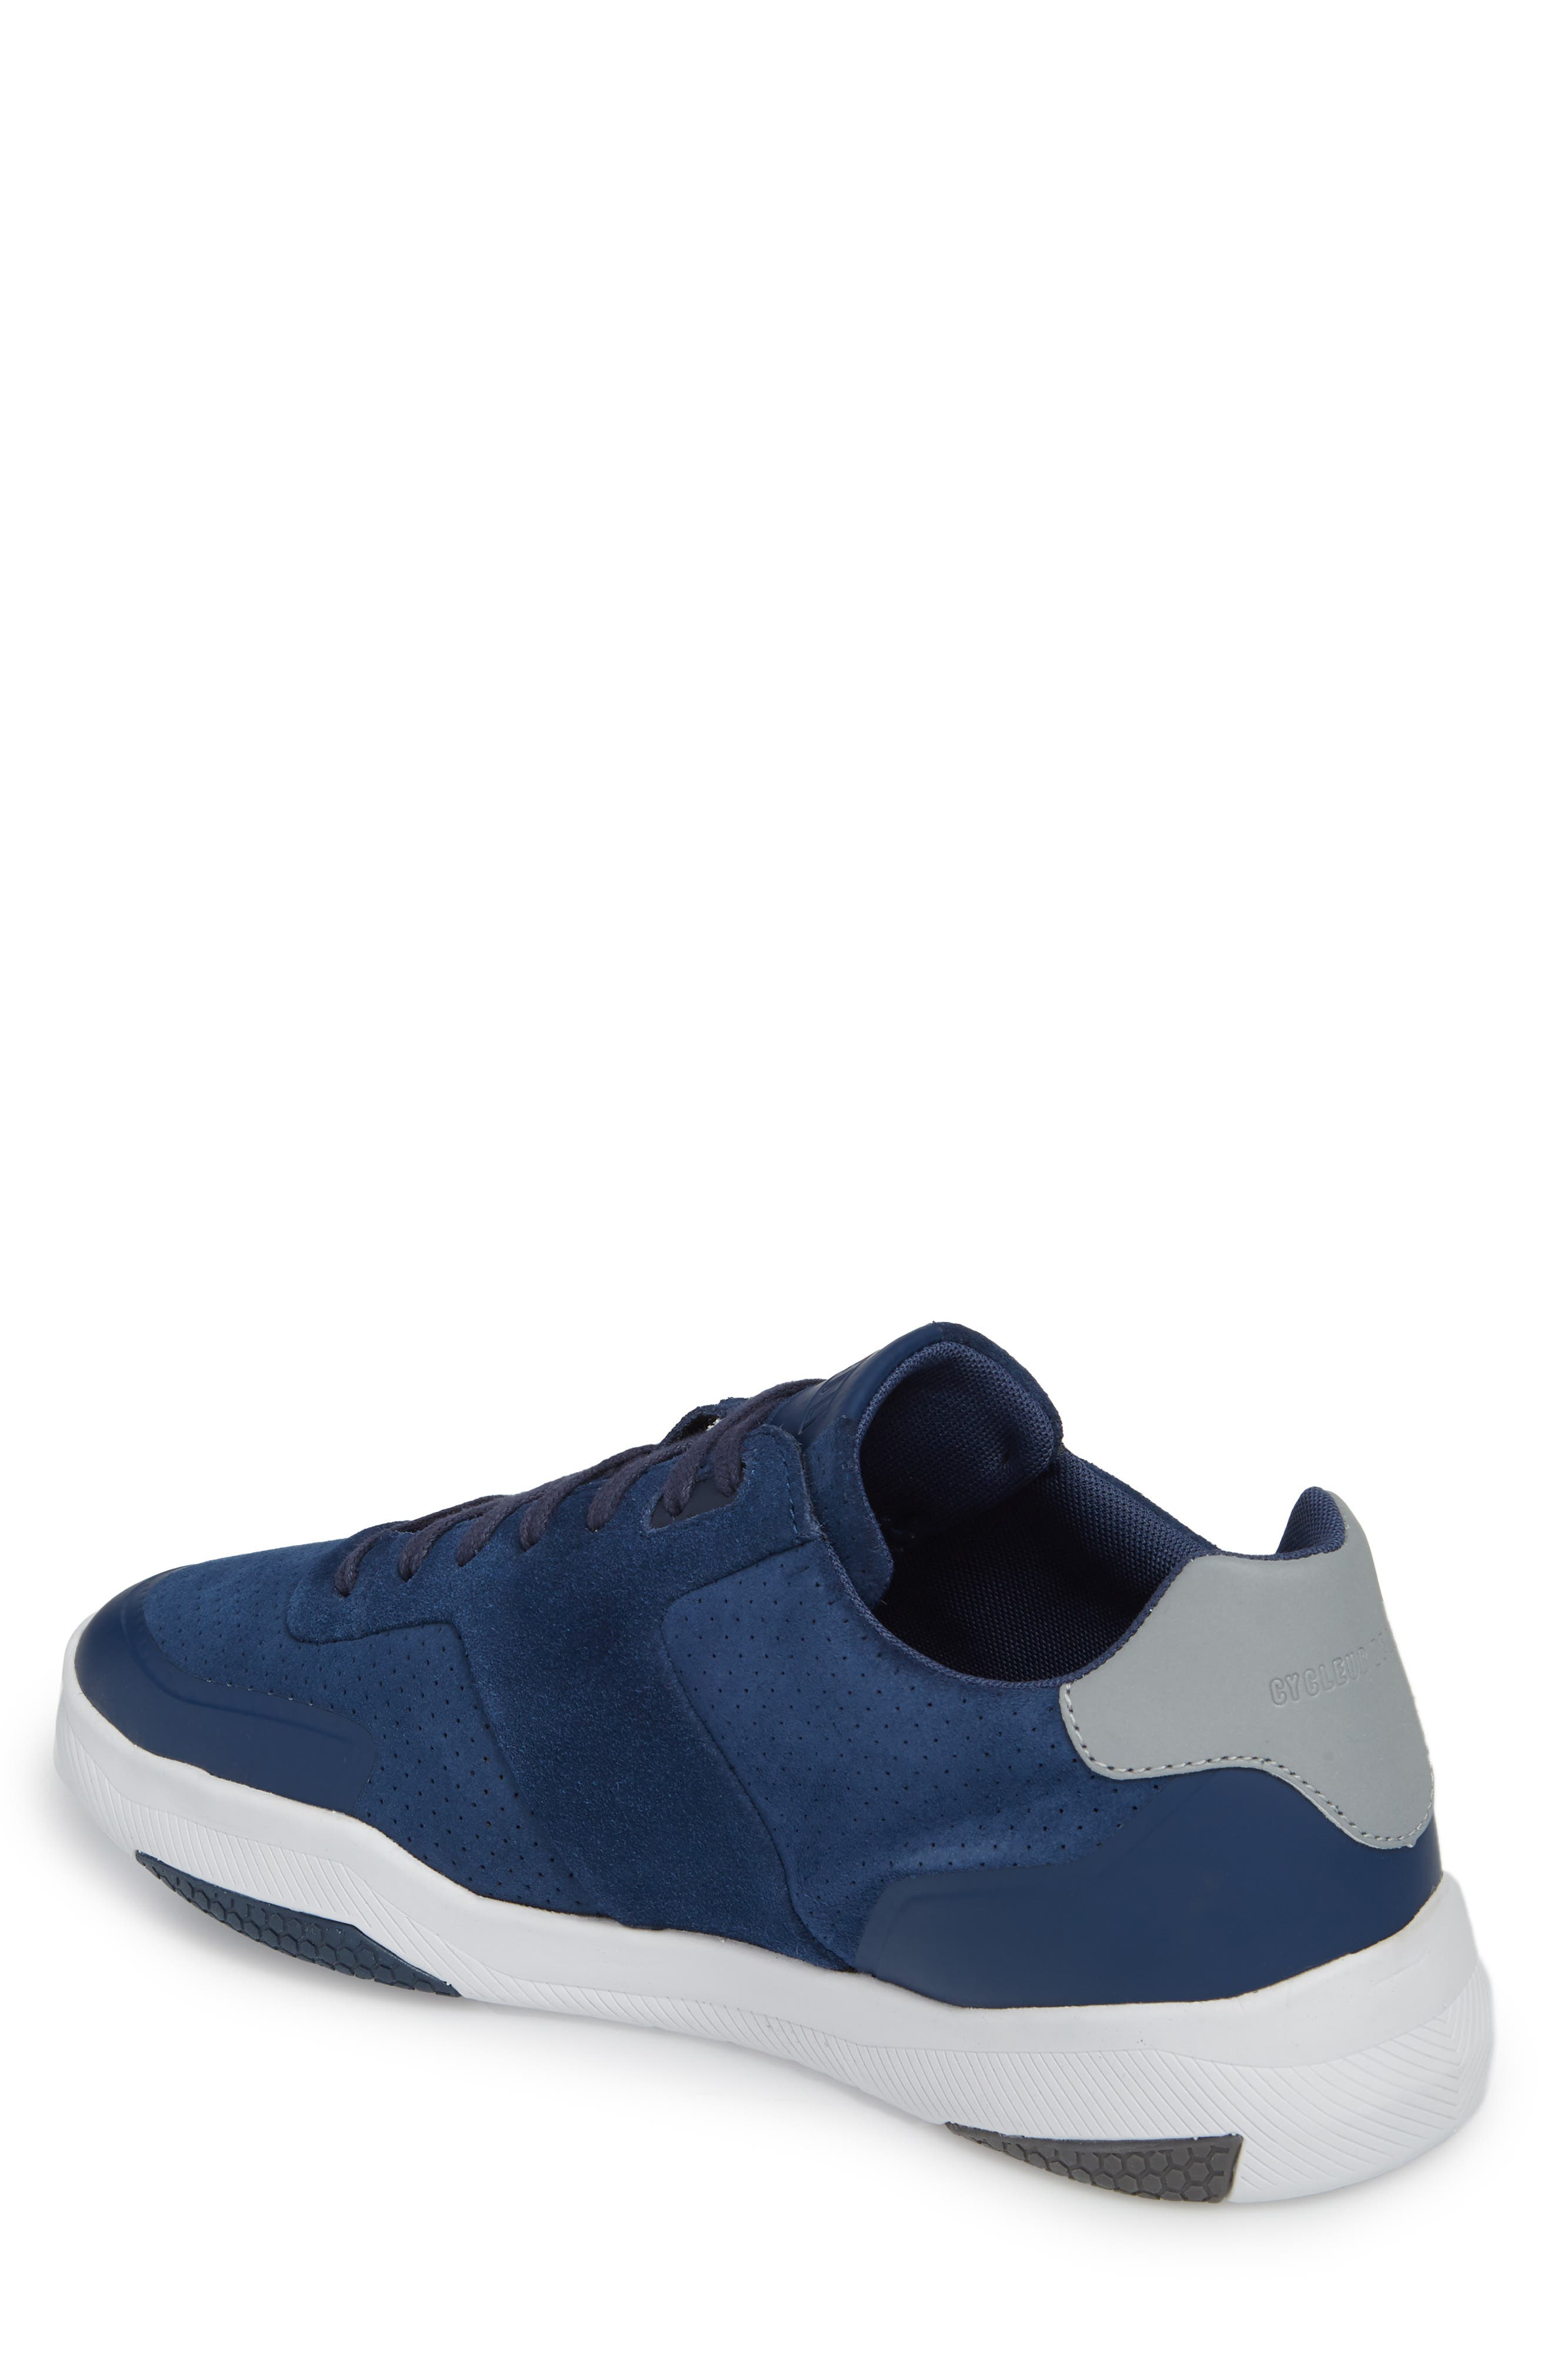 Shima Low Top Sneaker,                             Alternate thumbnail 2, color,                             NAVY SUEDE